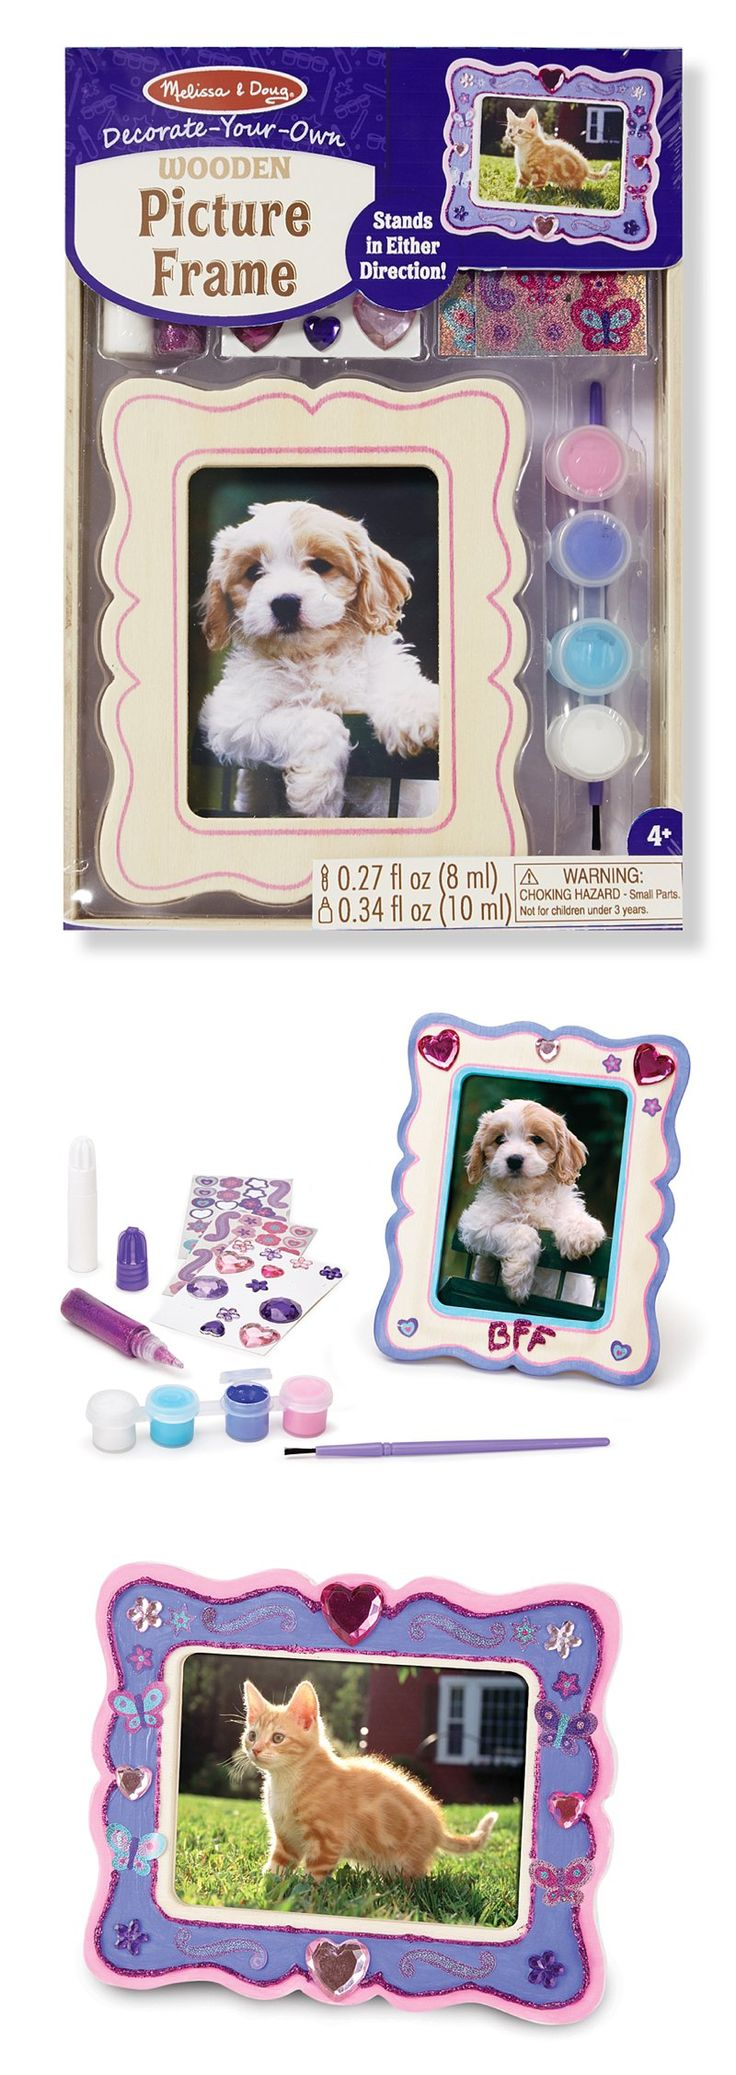 111 best most loved toys images on pinterest gift for Decorate your own picture frame craft